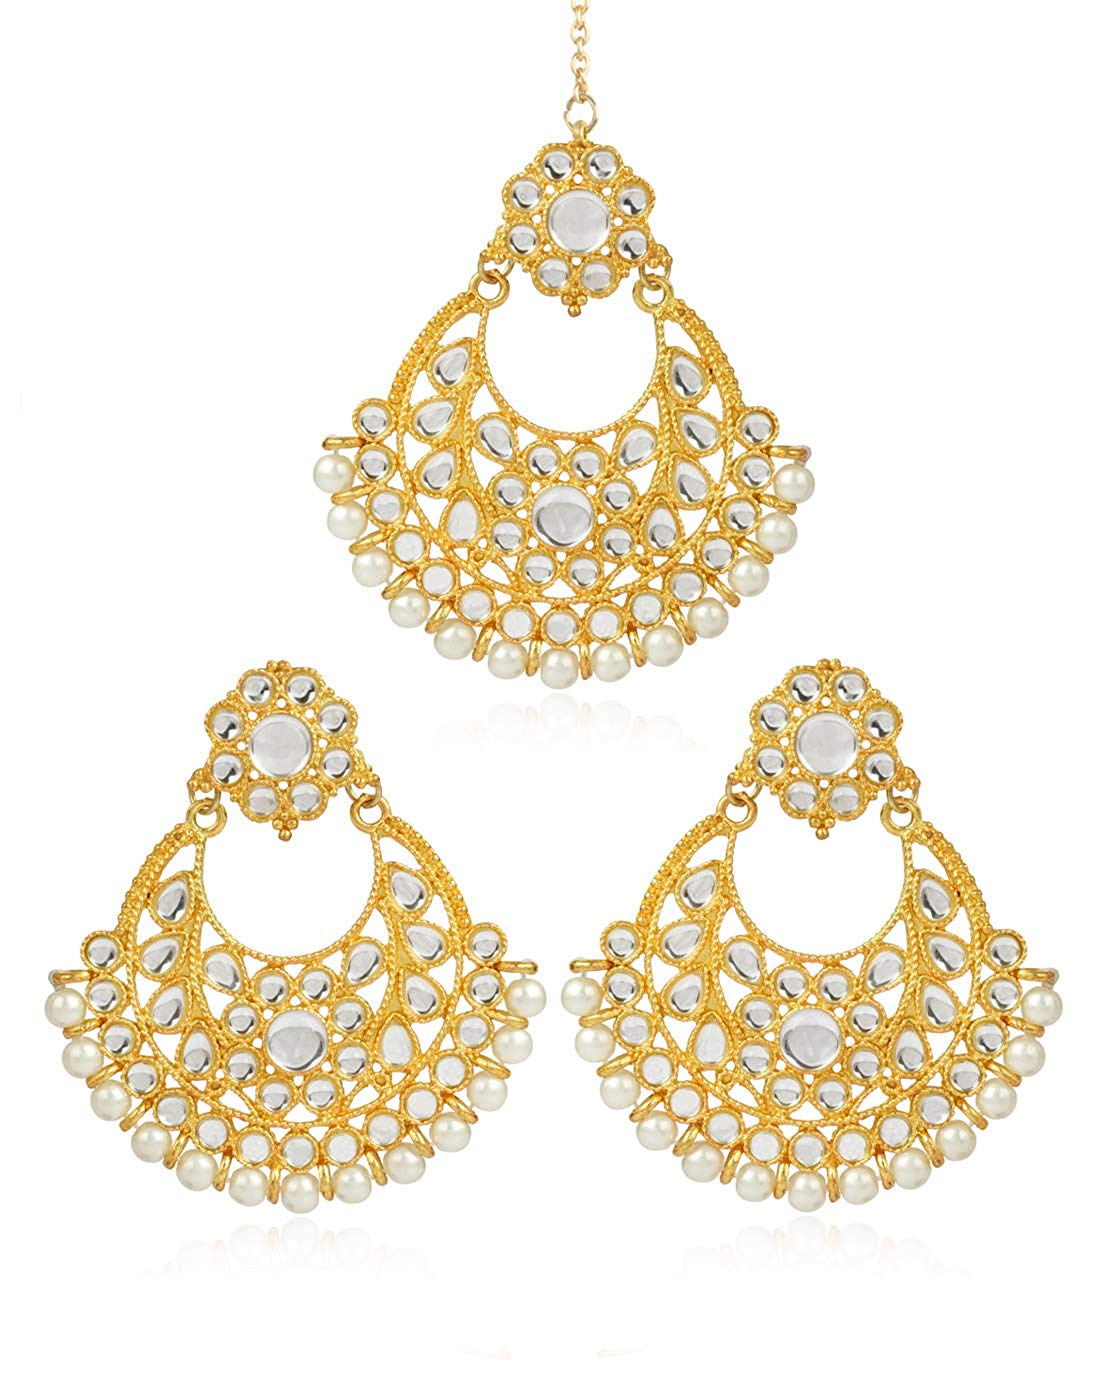 Karatcart GoldPlated Fashion Chandbali Hook Dangler Stylish Fancy Party Wear Earrings with Maang-Tikka For Women